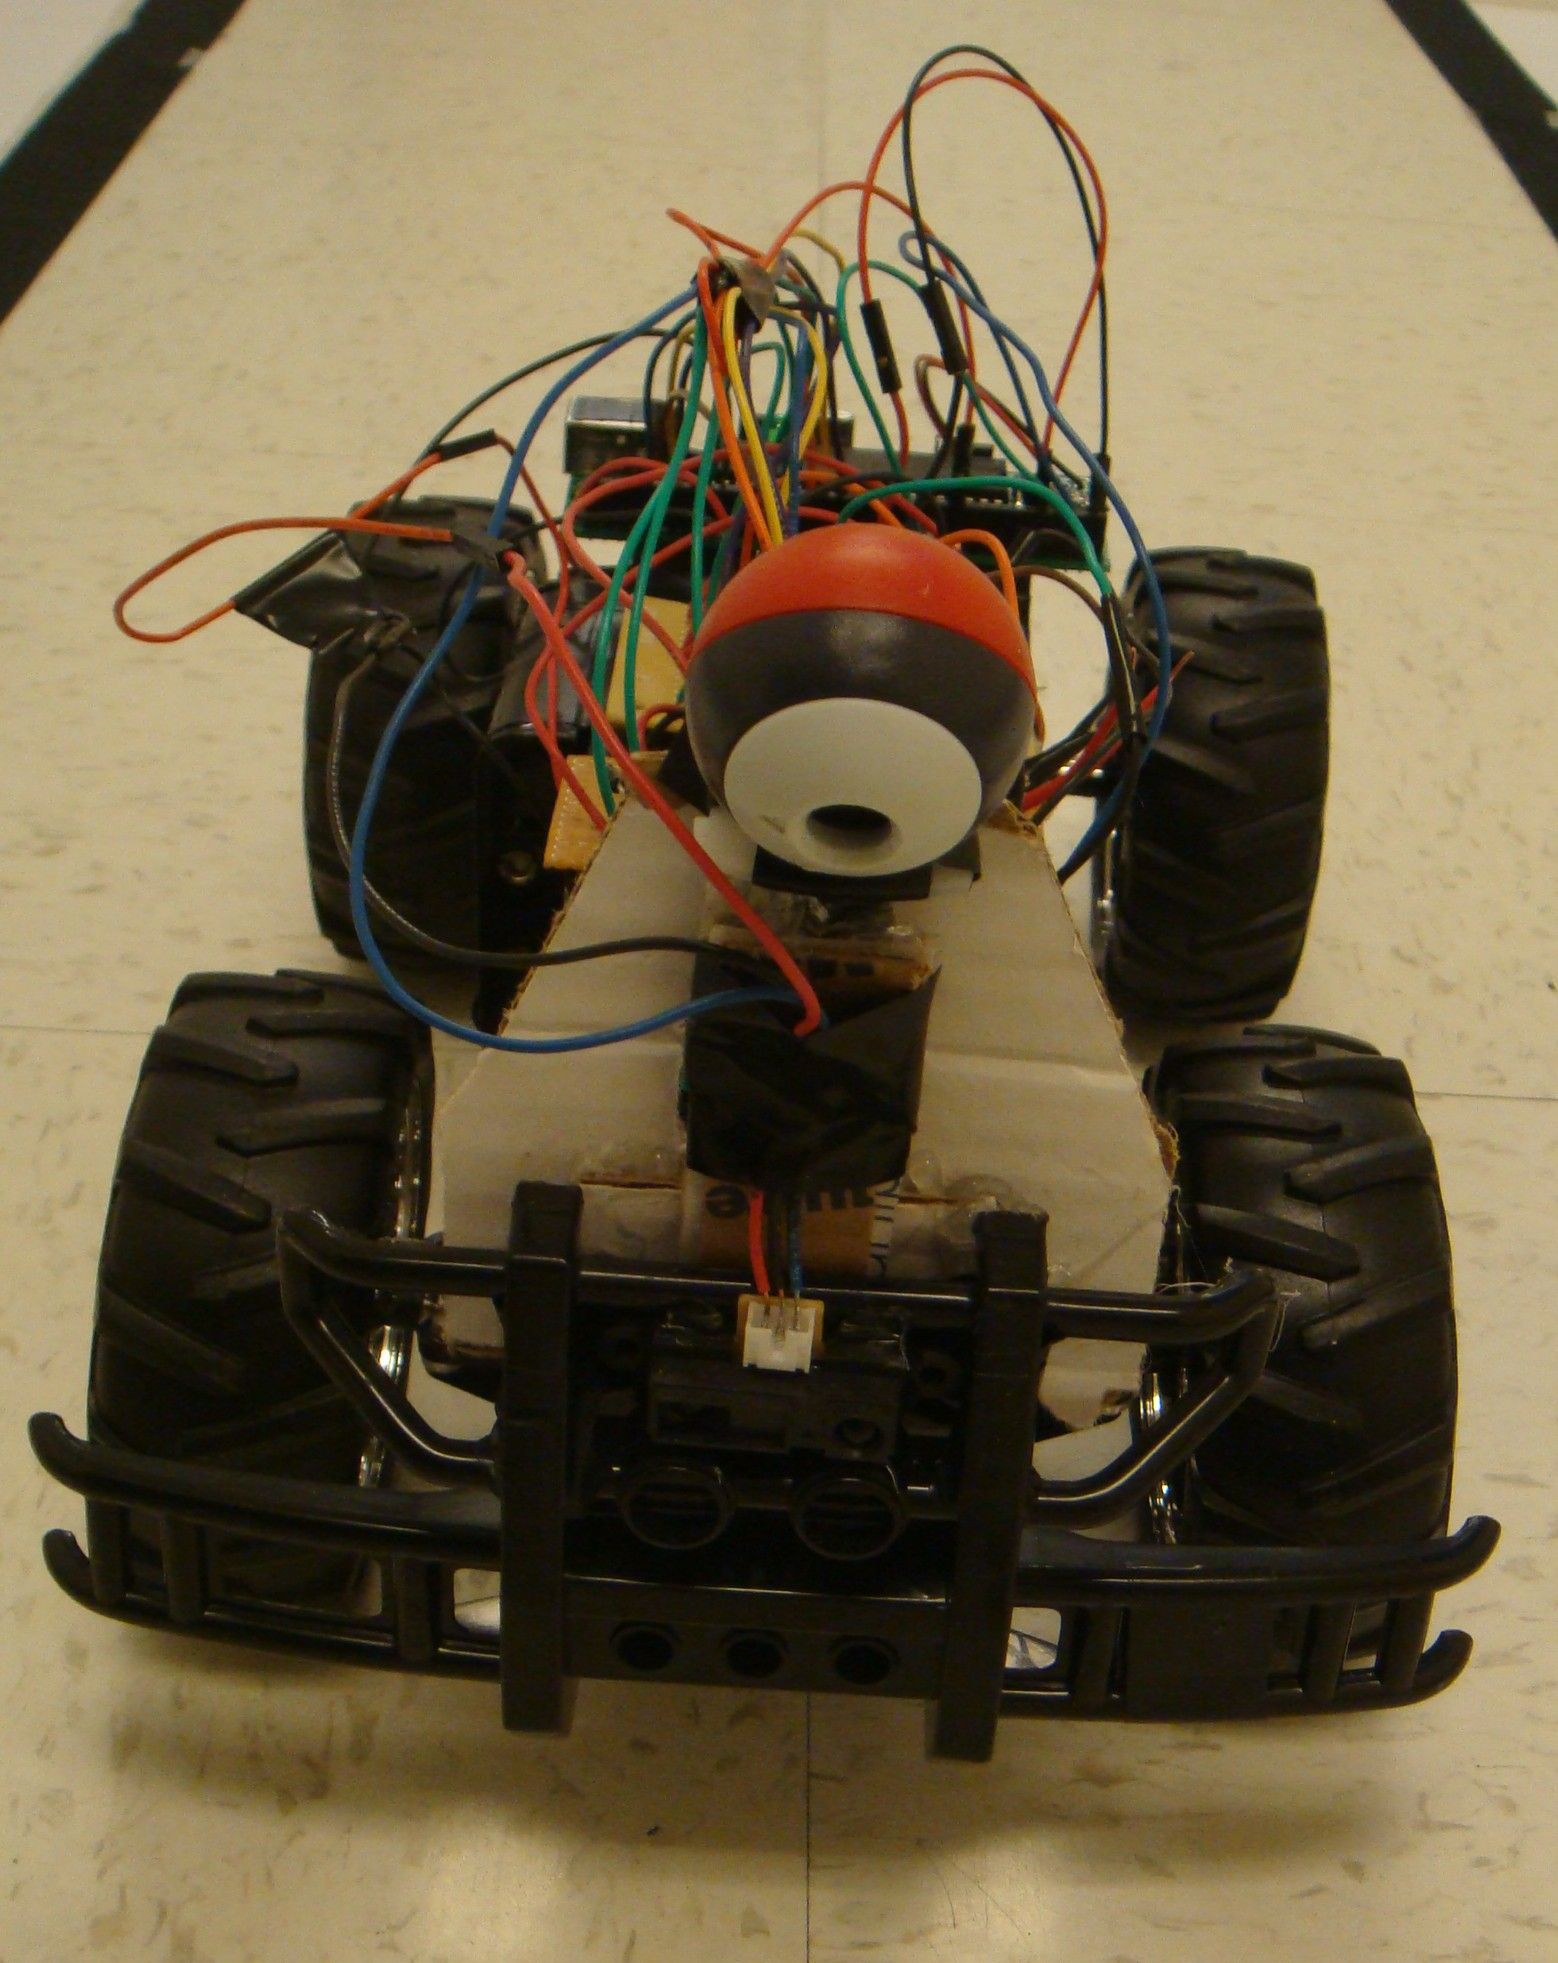 Autonomous visually steered car Using Atmega644